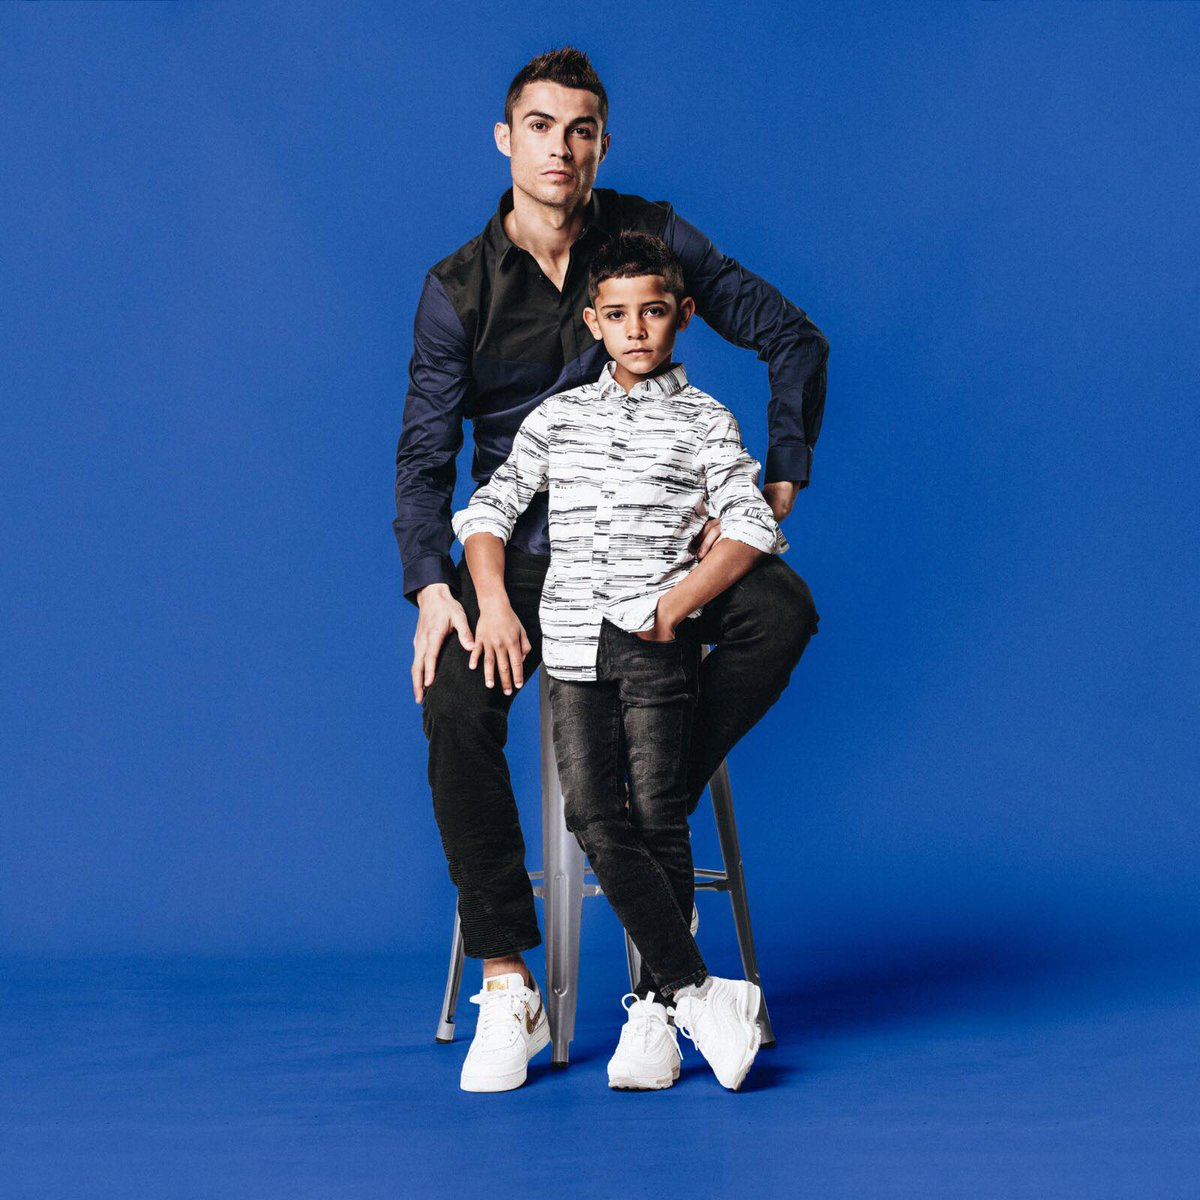 Me and my boy ???? Rocking our @cr7limitless & @cr7junior gear | https://t.co/rIL6OxcBQk #CR7Denim #CR7Jeans #CR7Squad https://t.co/wGuGCAP2mg